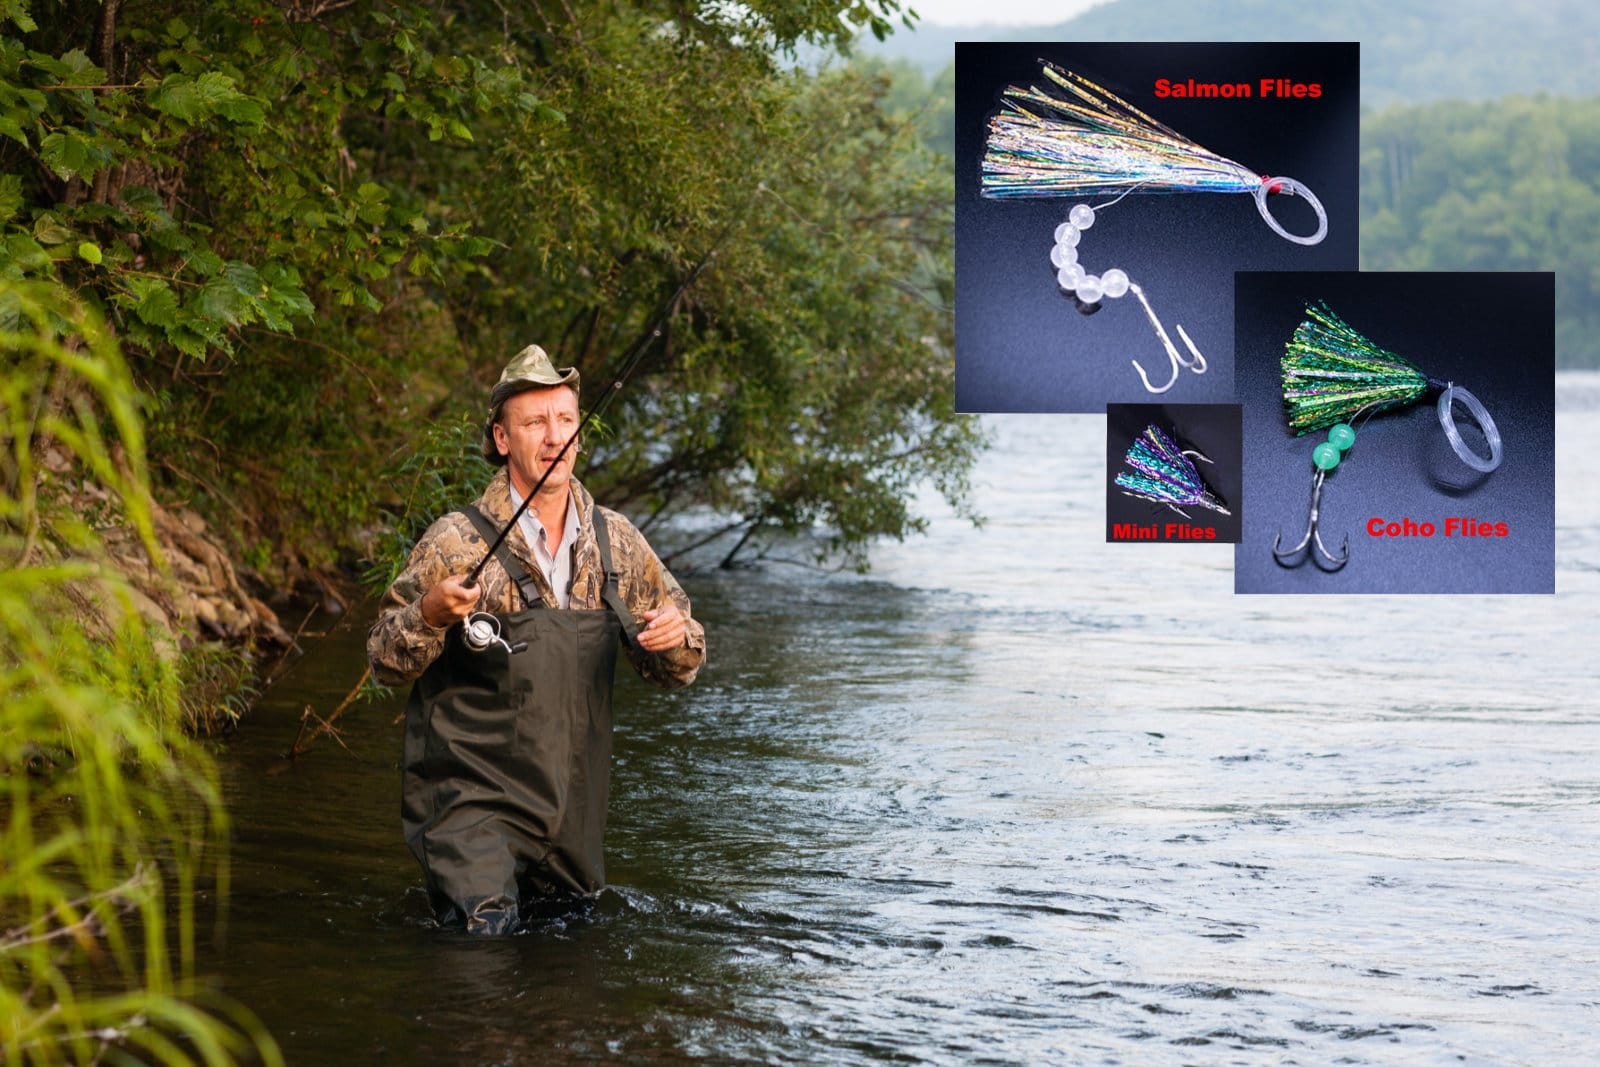 What Do You Need To Fly Fish For Salmon And Other Species Successfully?